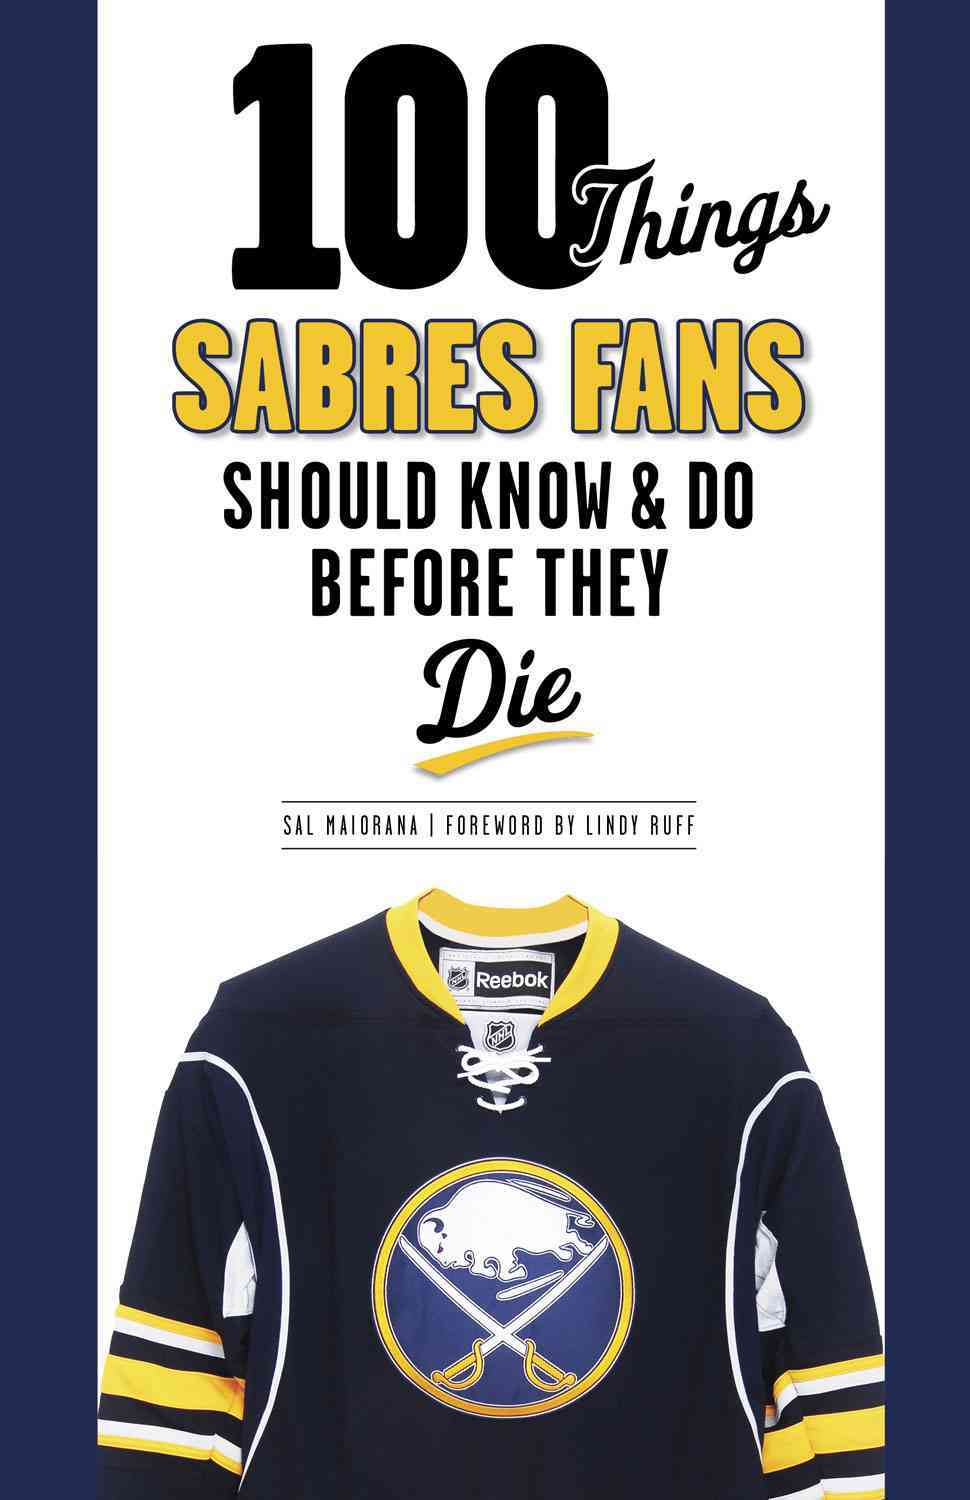 100 Things Sabres Fans Should Know & Do Before They Die By Maiorana, Sal